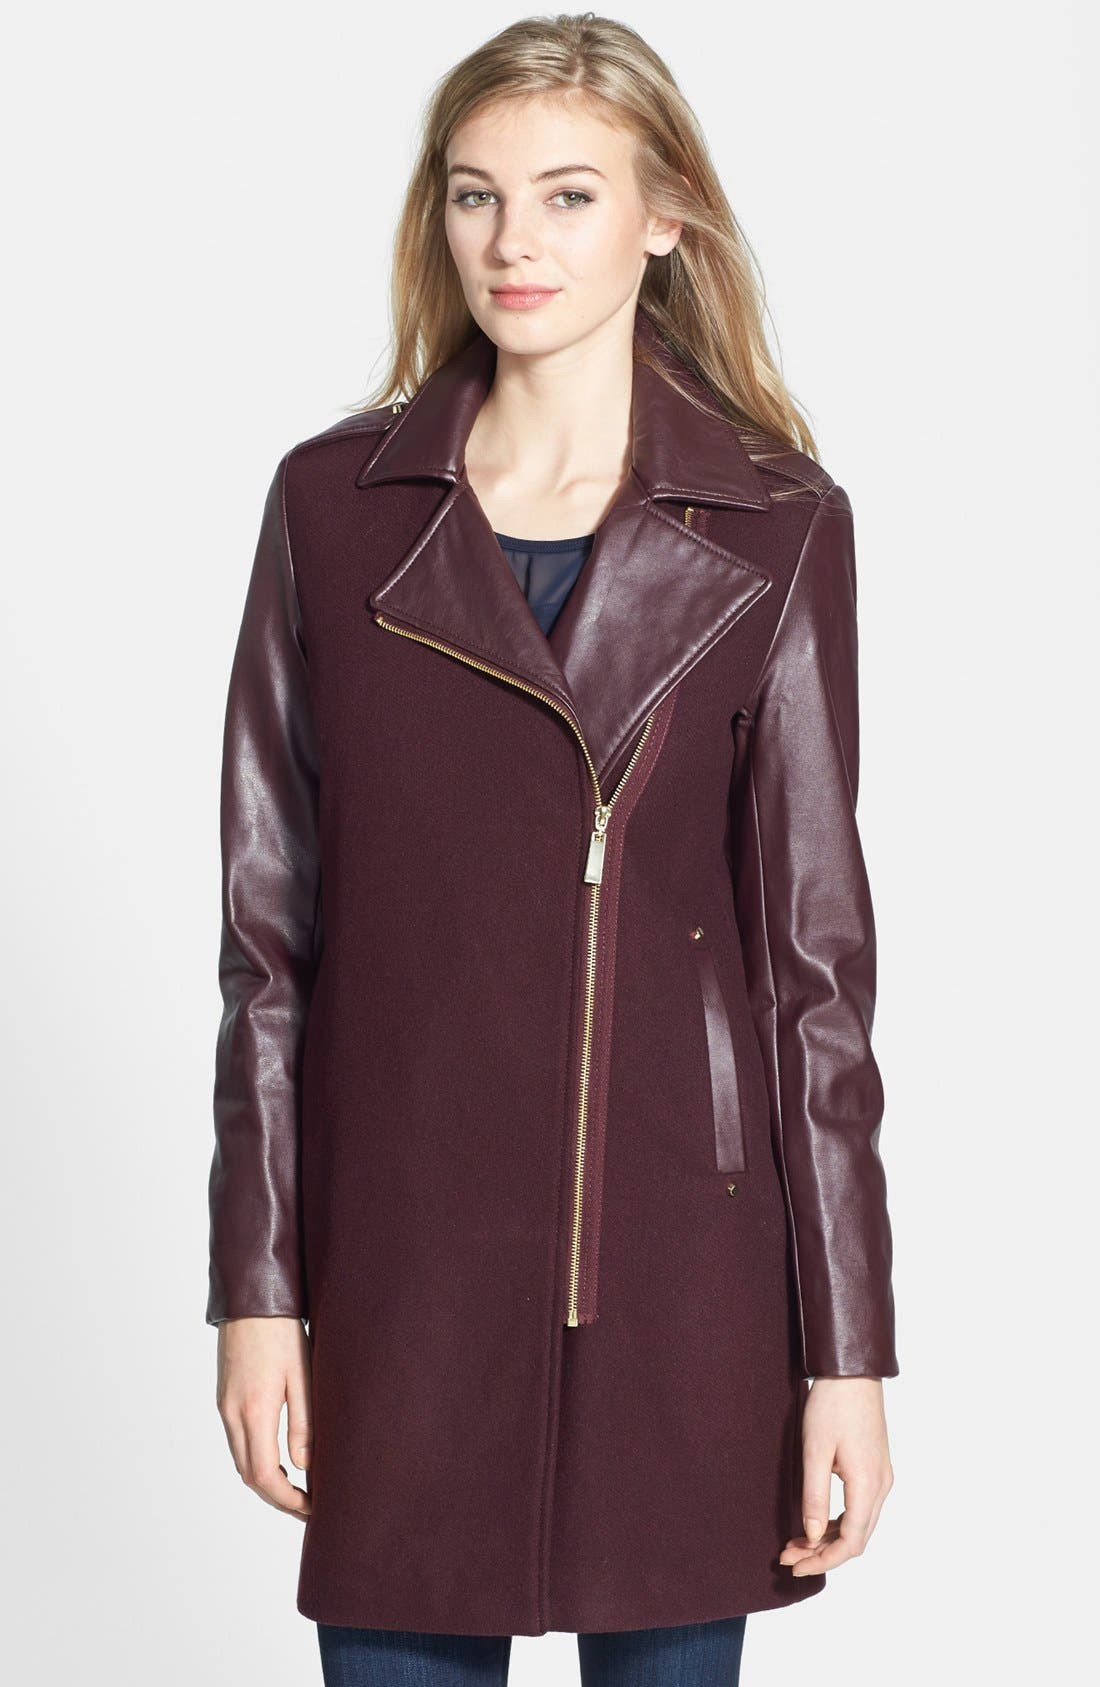 Alternate Image 1 Selected - Vince Camuto Asymmetrical Zip Wool Blend & Faux Leather Coat